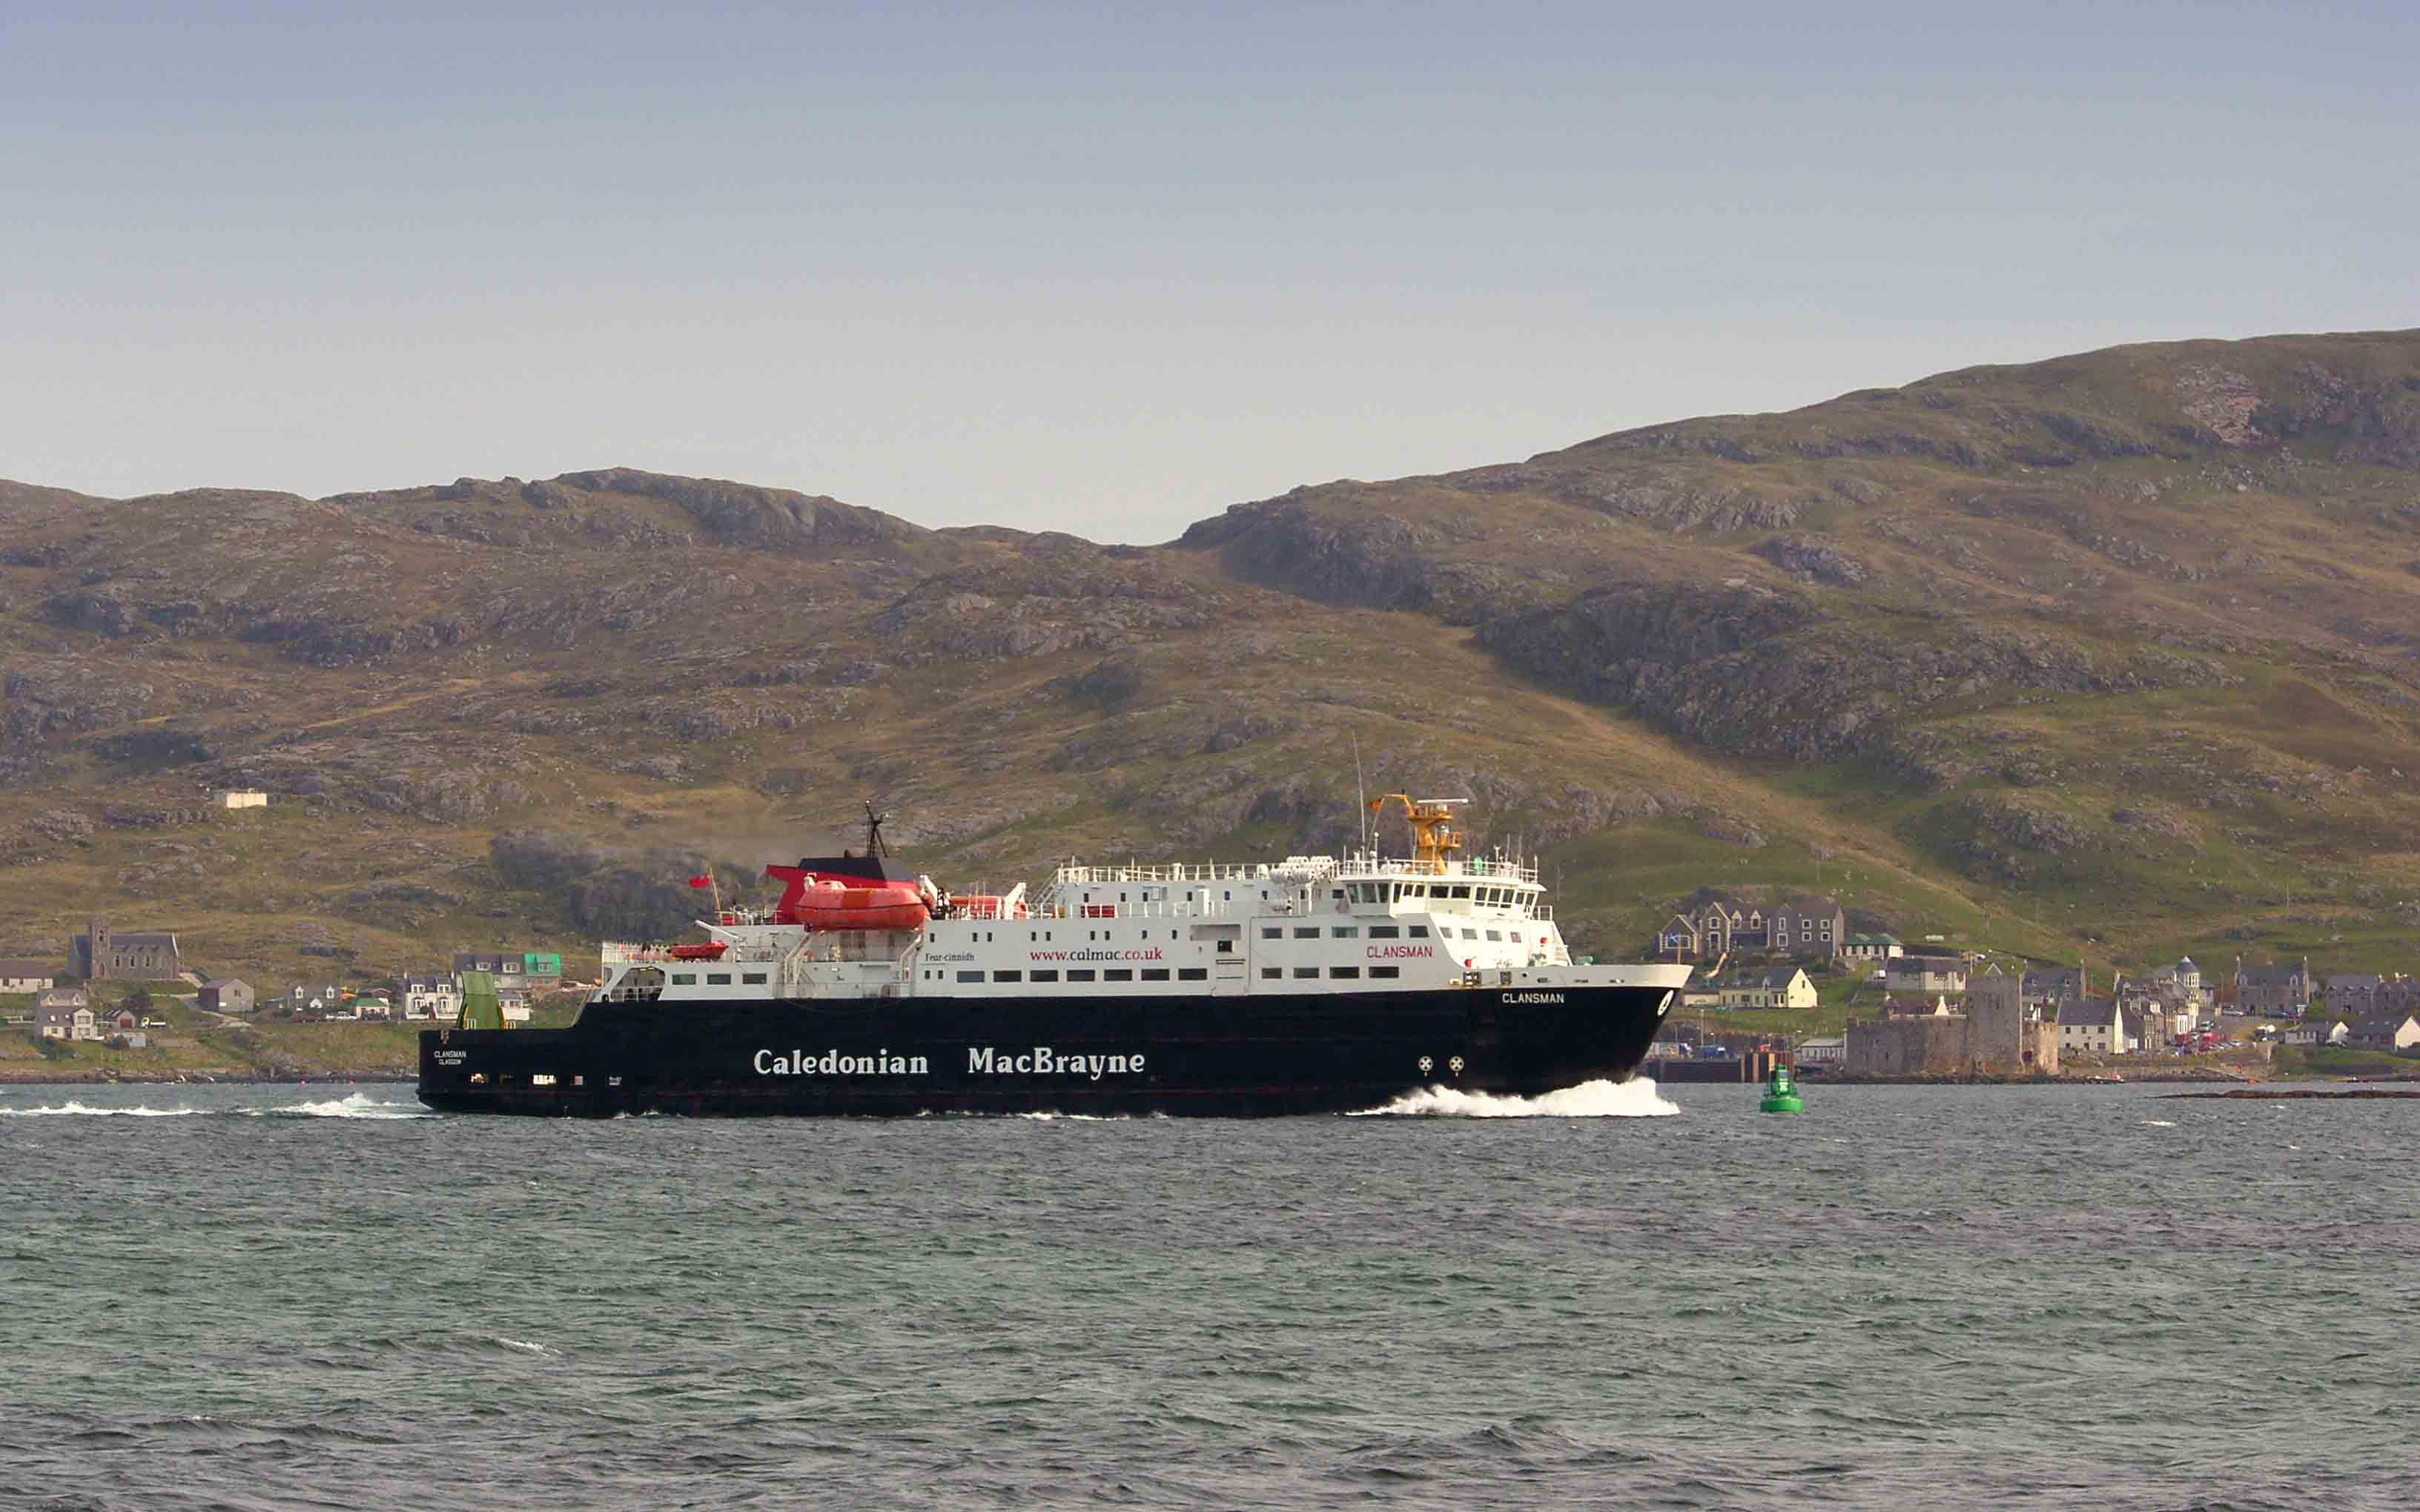 Clansman leaving Castlebay on the return journey to Oban (Ships of CalMac)